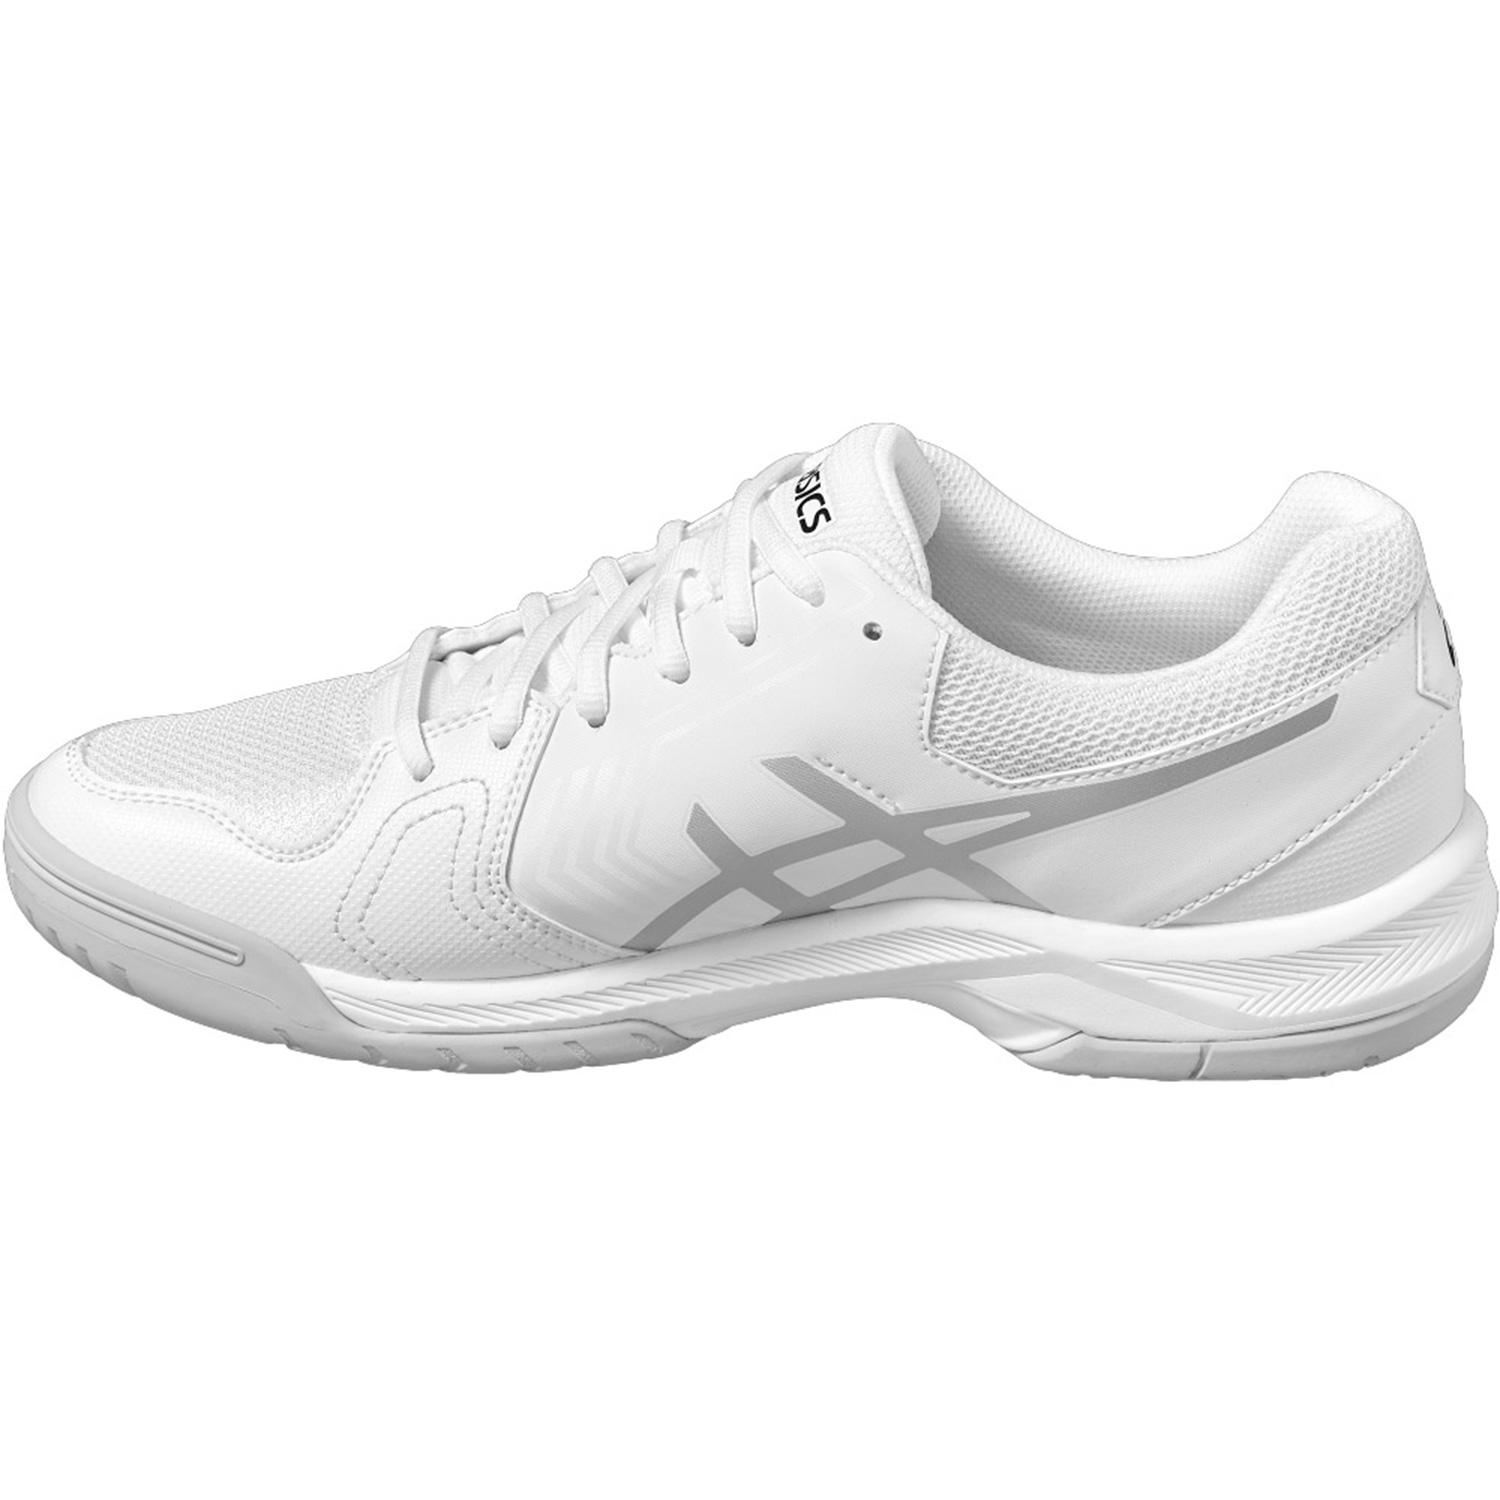 48b5a82dafbc Asics Mens GEL-Dedicate 5 Tennis Shoes - White Silver - Tennisnuts.com